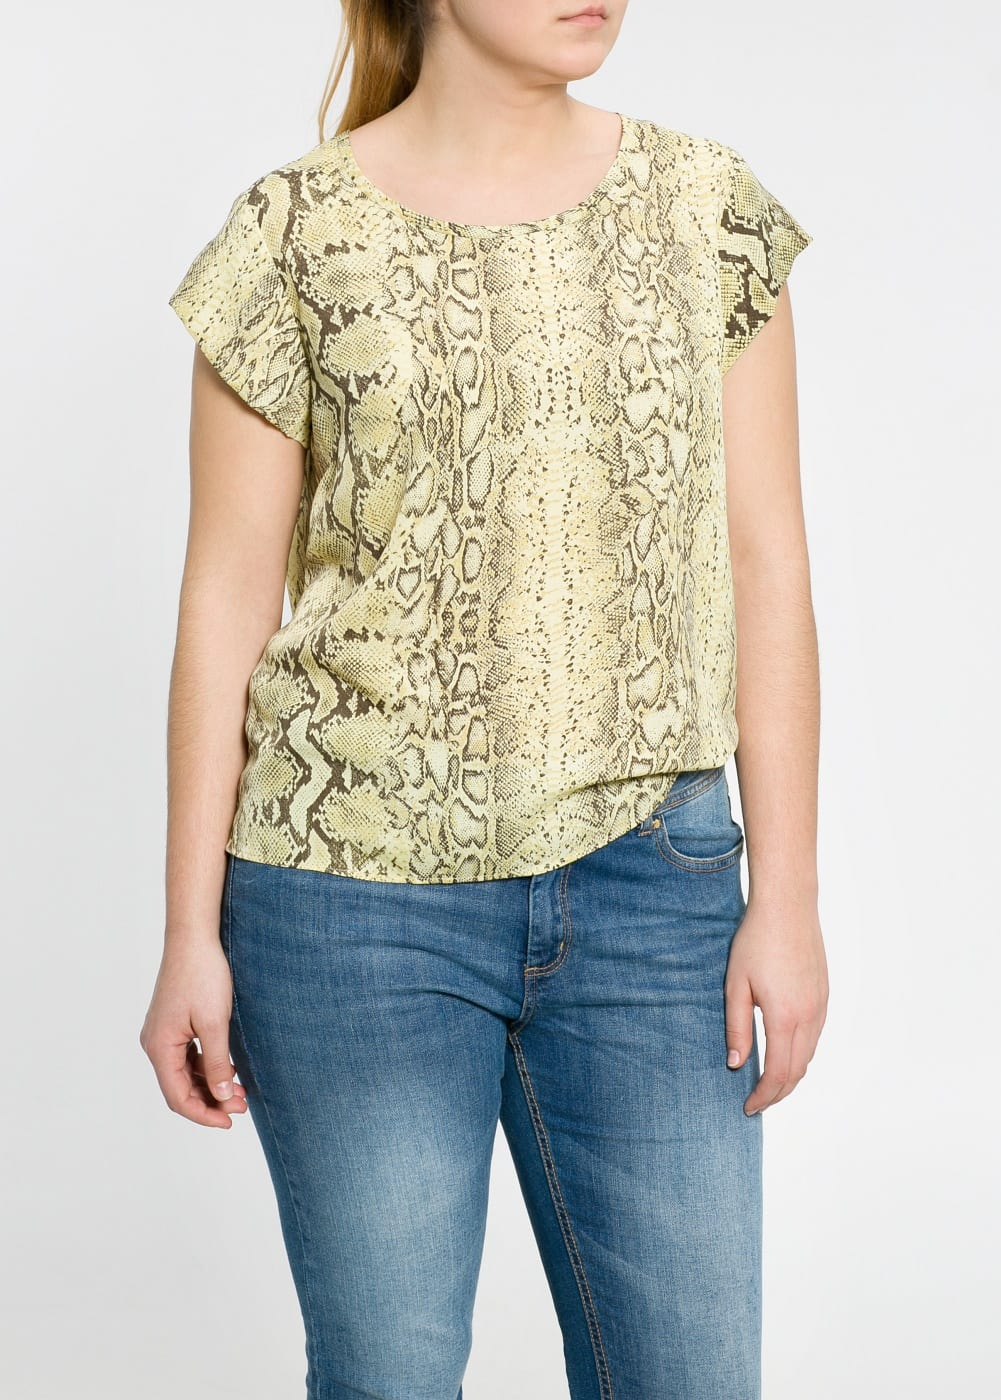 Blusa estampado serpiente | VIOLETA BY MANGO